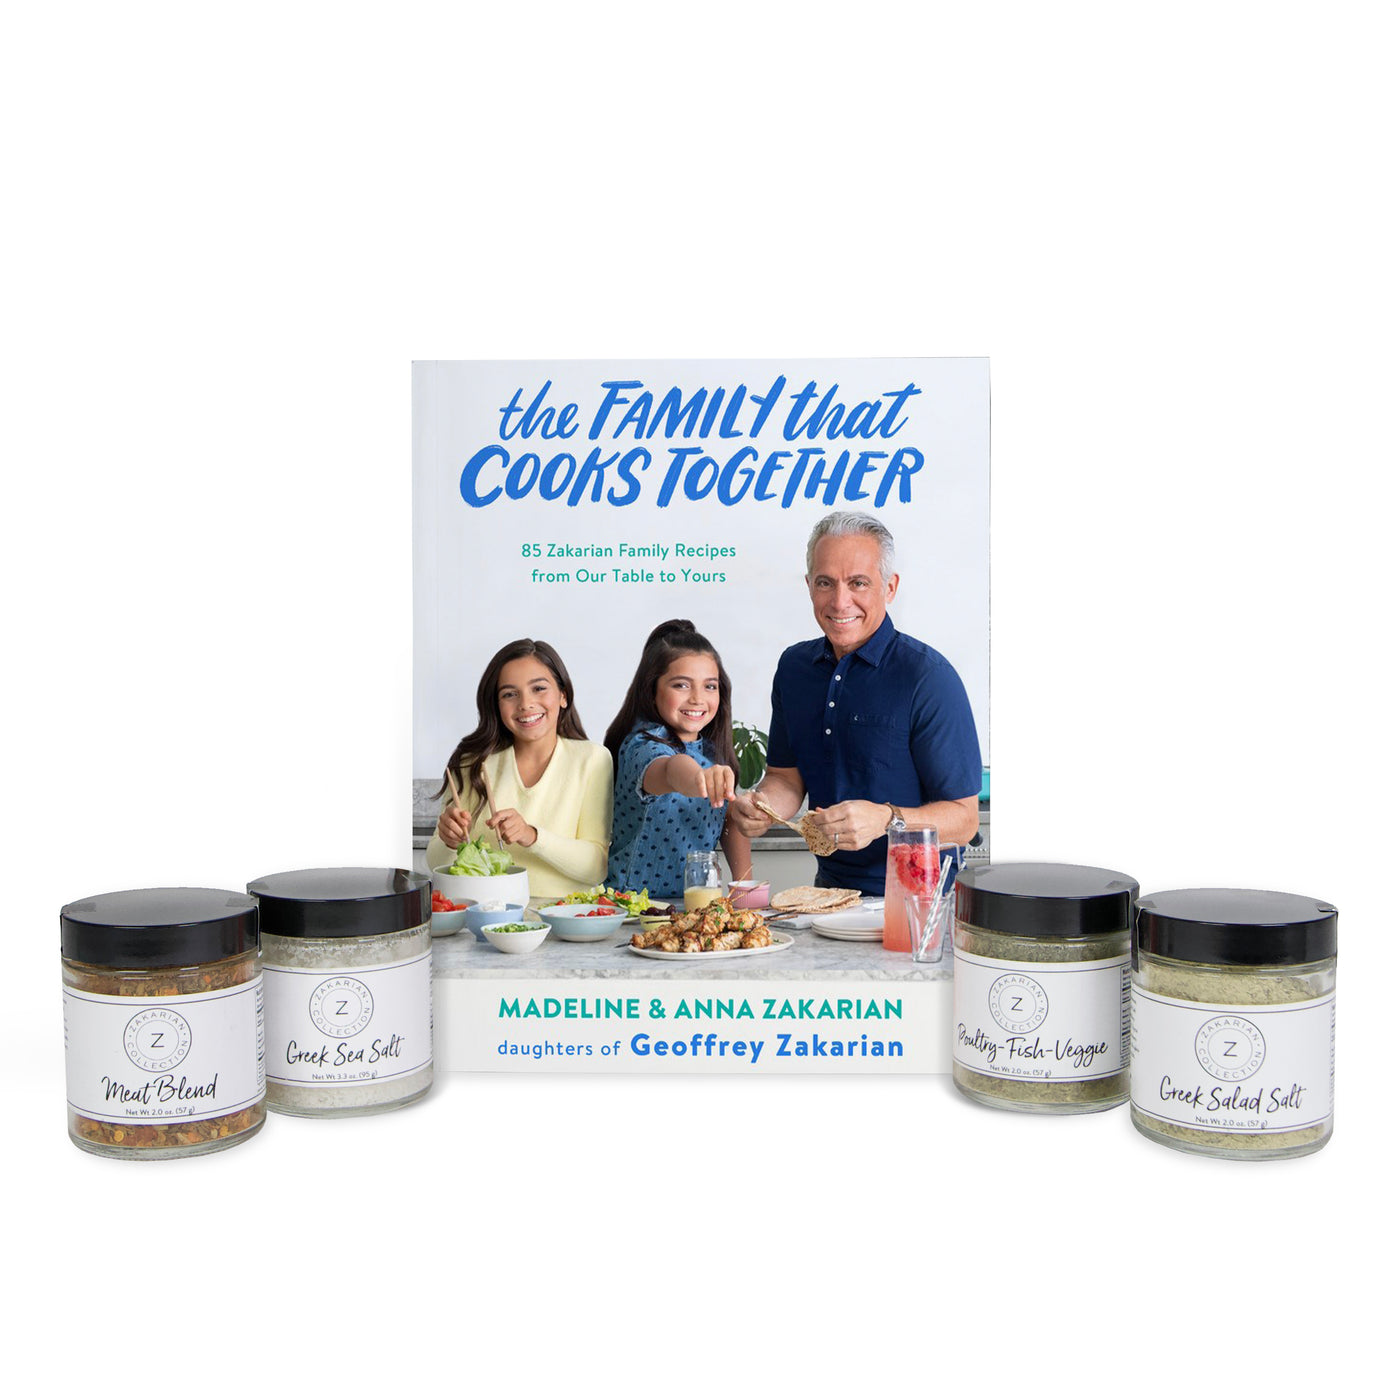 The Family That Cooks Together & Zakarian Spice Set